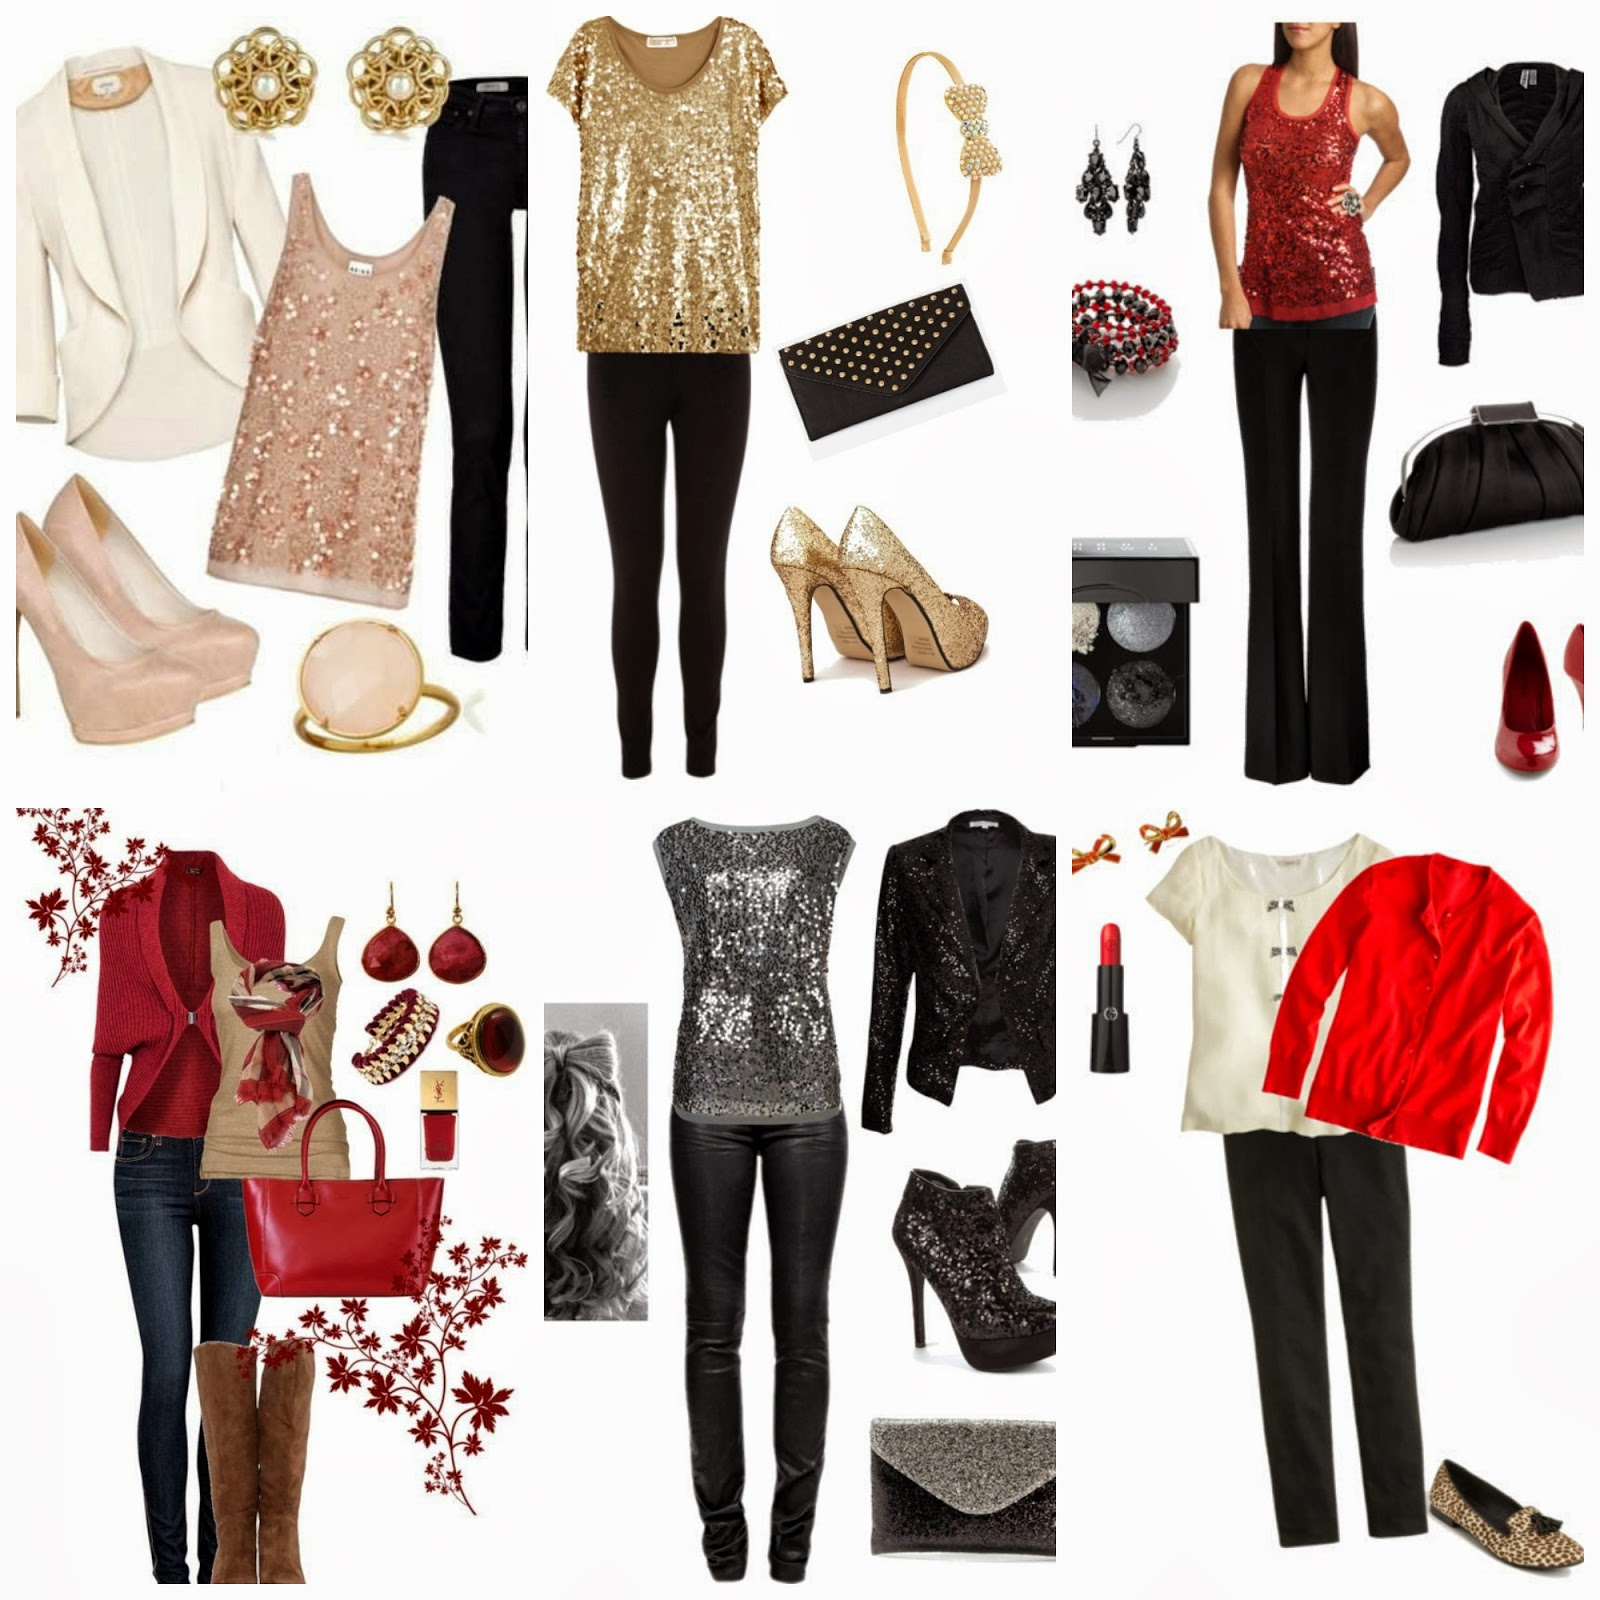 Family Christmas Party Casual Outfit Dress Images